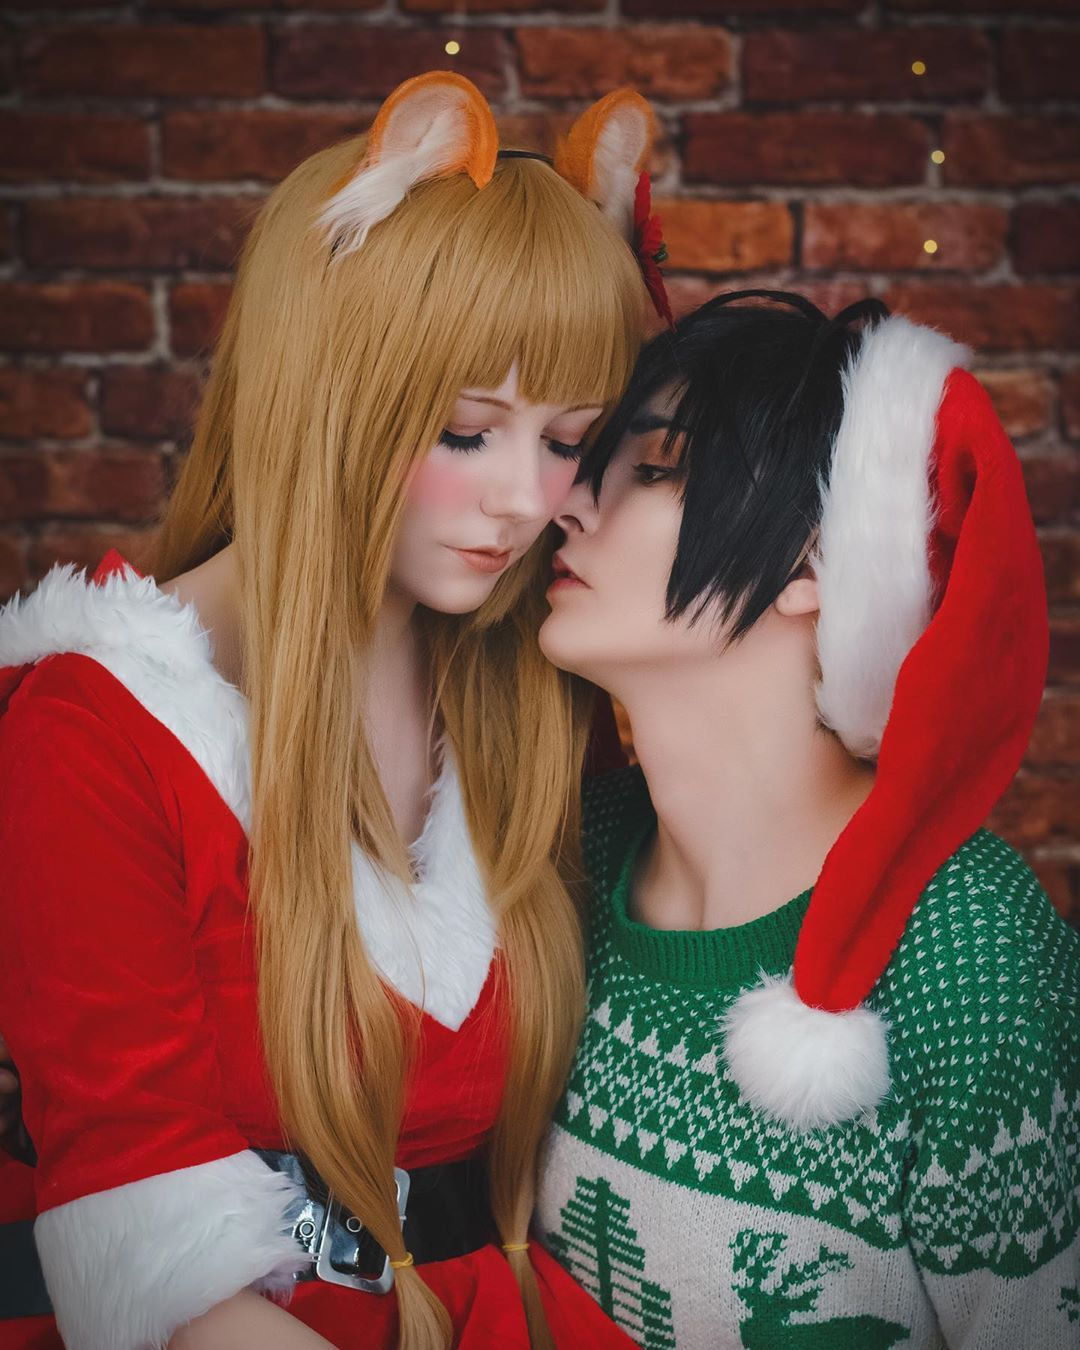 Excited for coming Christmas. How about you? 🍬 Raphtalia